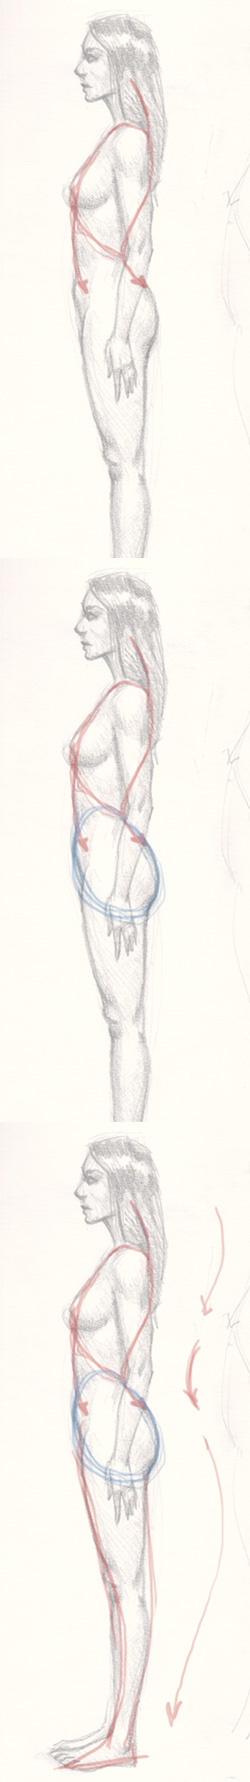 draw woman body sideview 01 Learn how to draw woman body side view